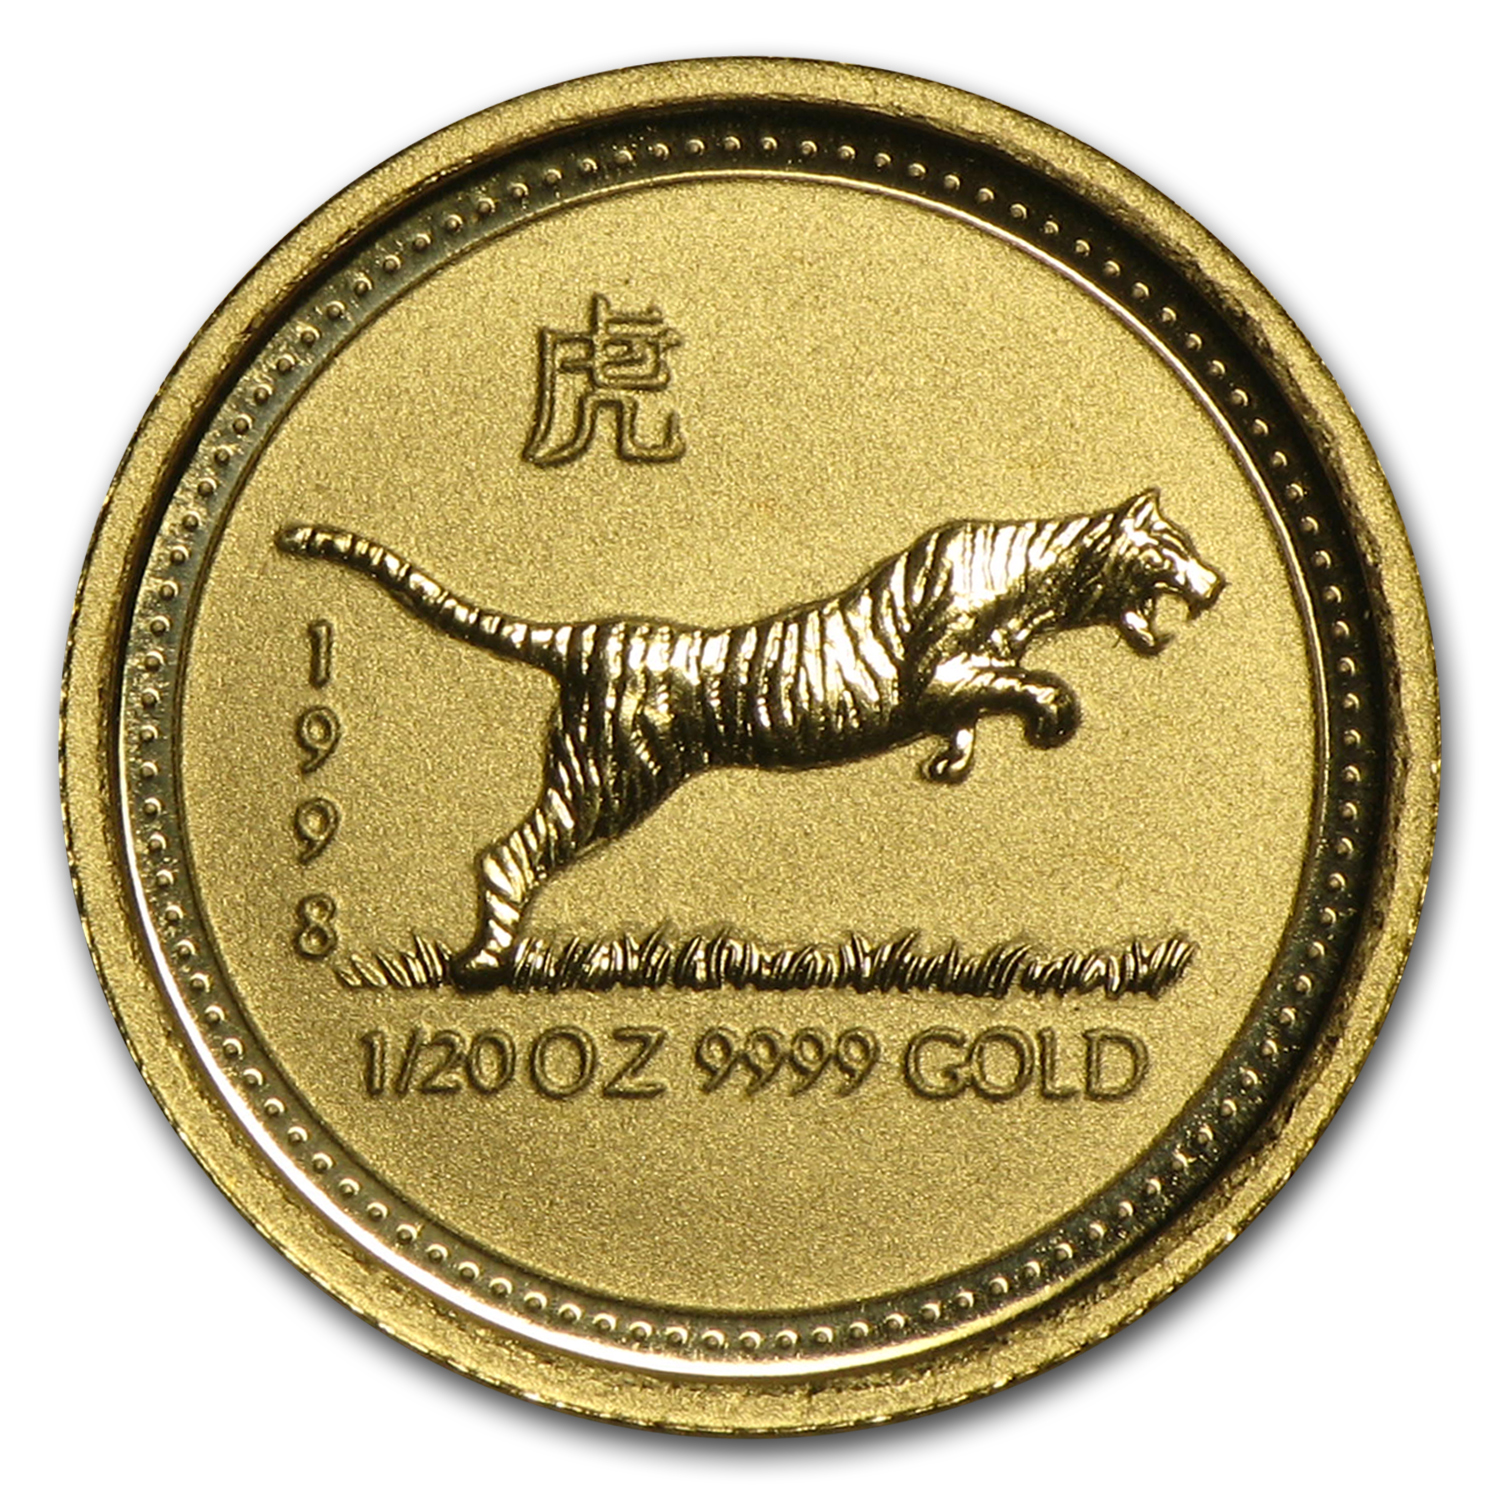 1998 1/20 oz Gold Lunar Year of the Tiger BU (Series I)